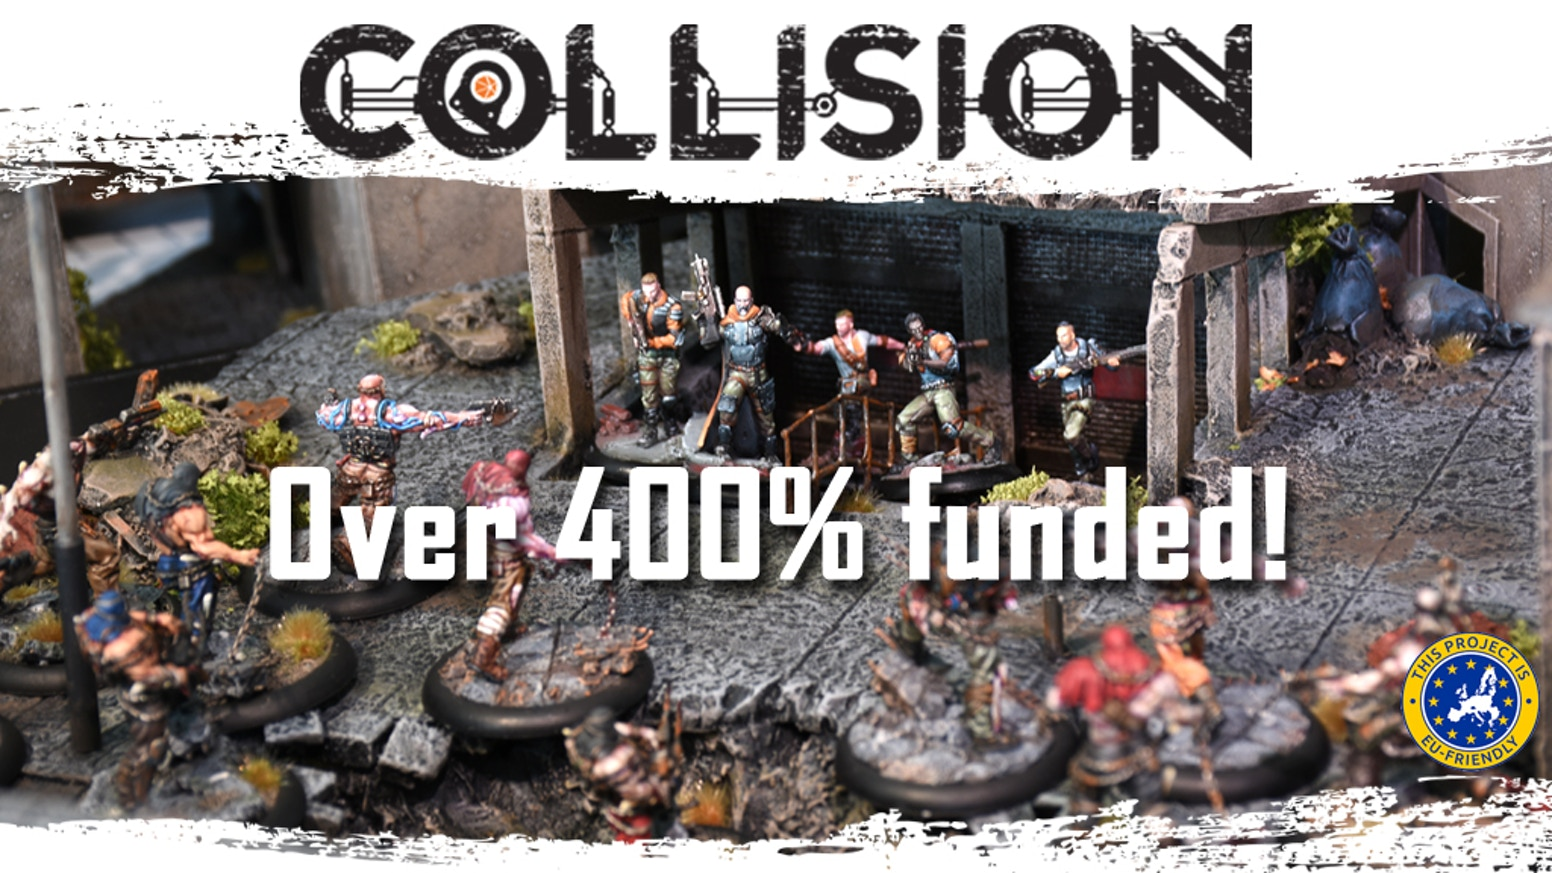 Collision is a post-apocalyptic miniature game played with cards. It is fast paced and involves engaging player interaction.